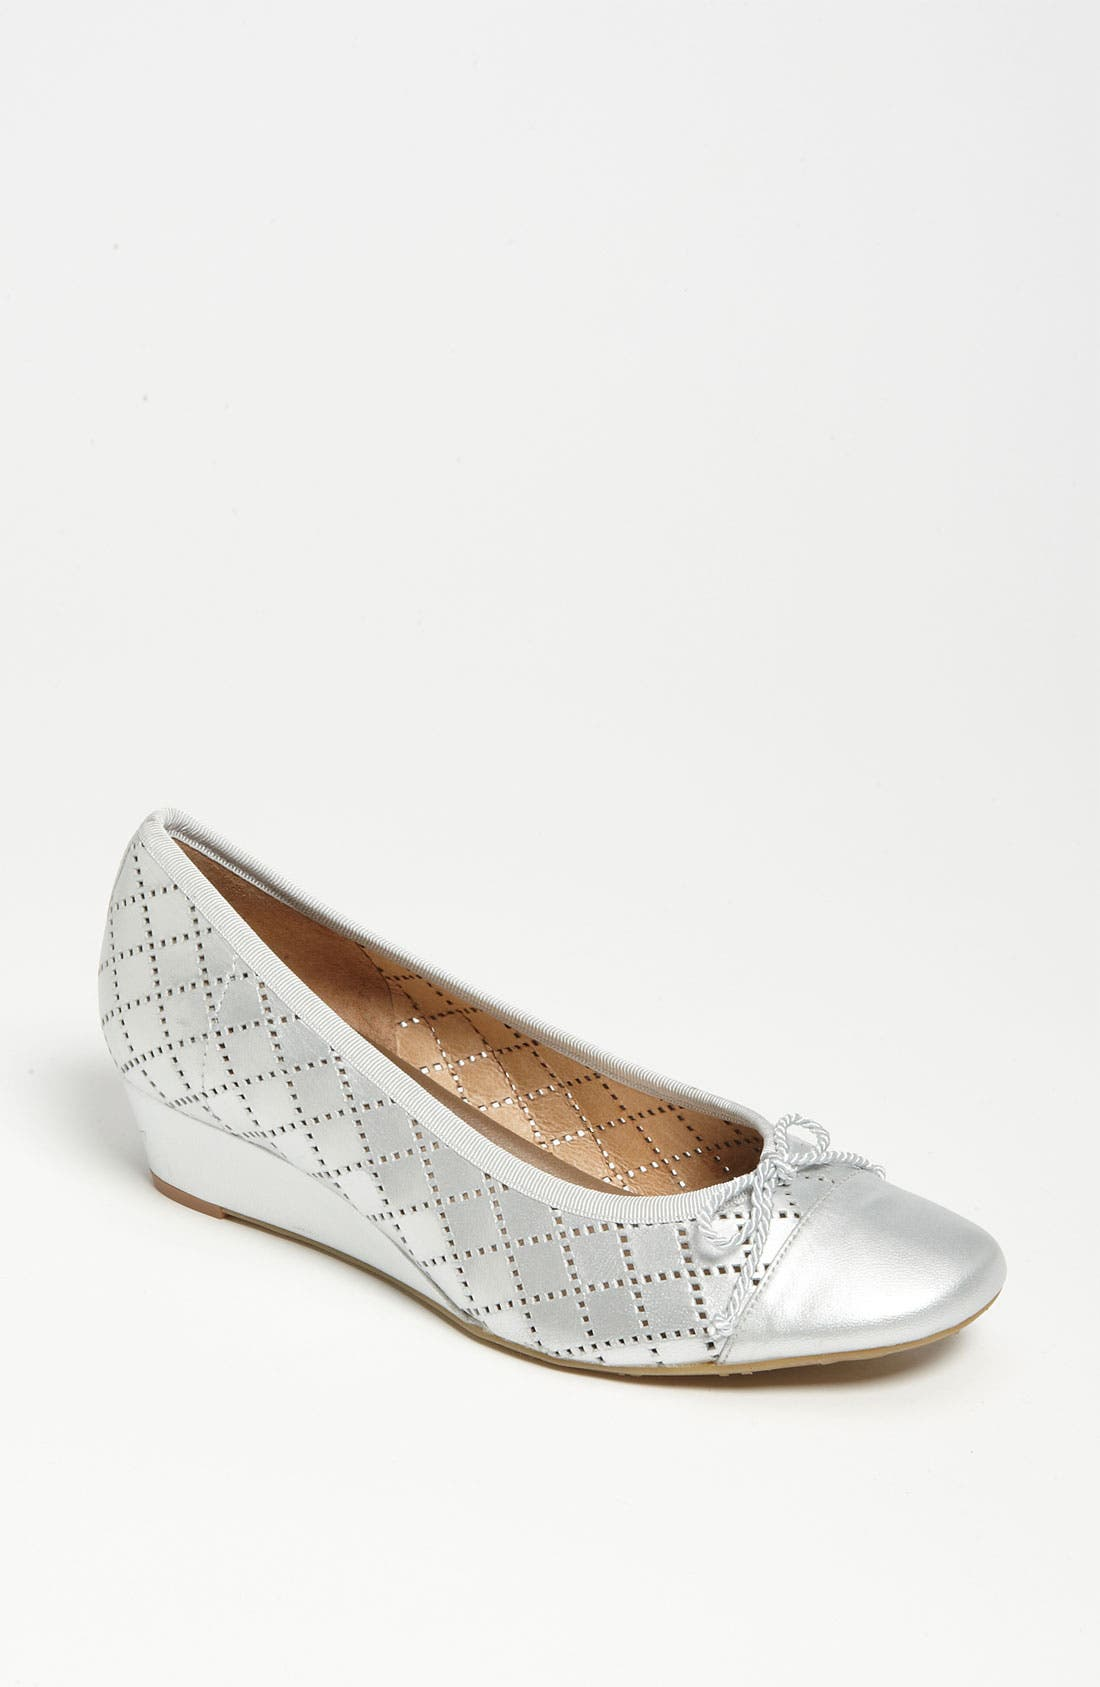 Alternate Image 1 Selected - French Sole 'Filigree' Flat